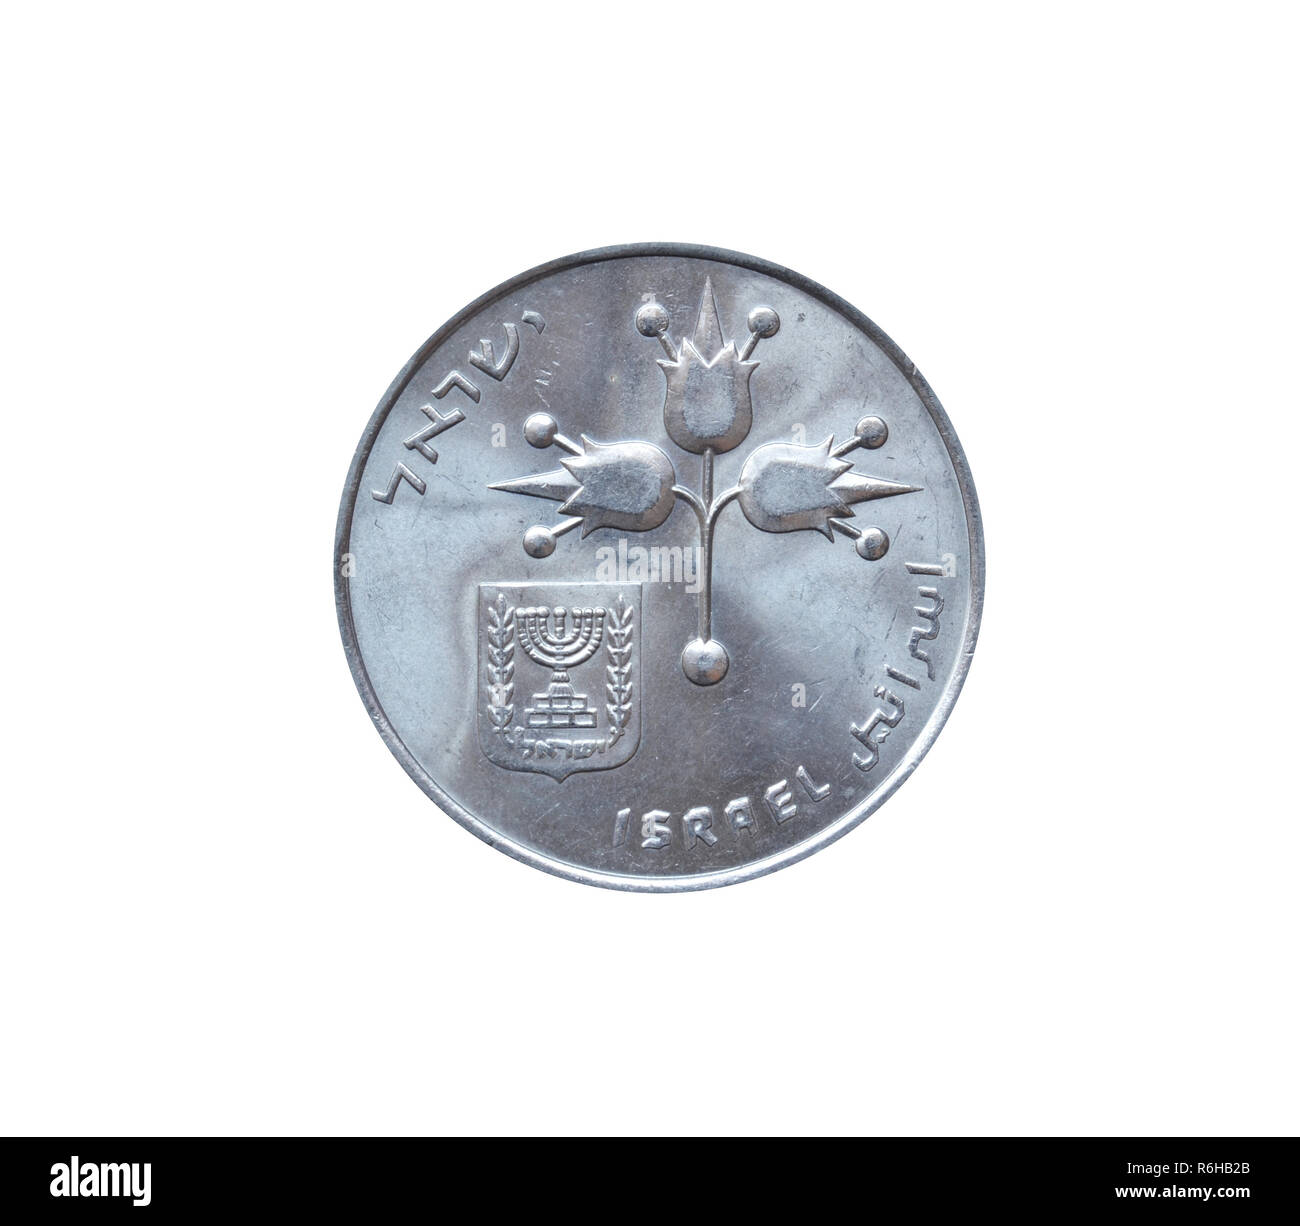 Vintage coin made by Israel, that shows Symbol of three